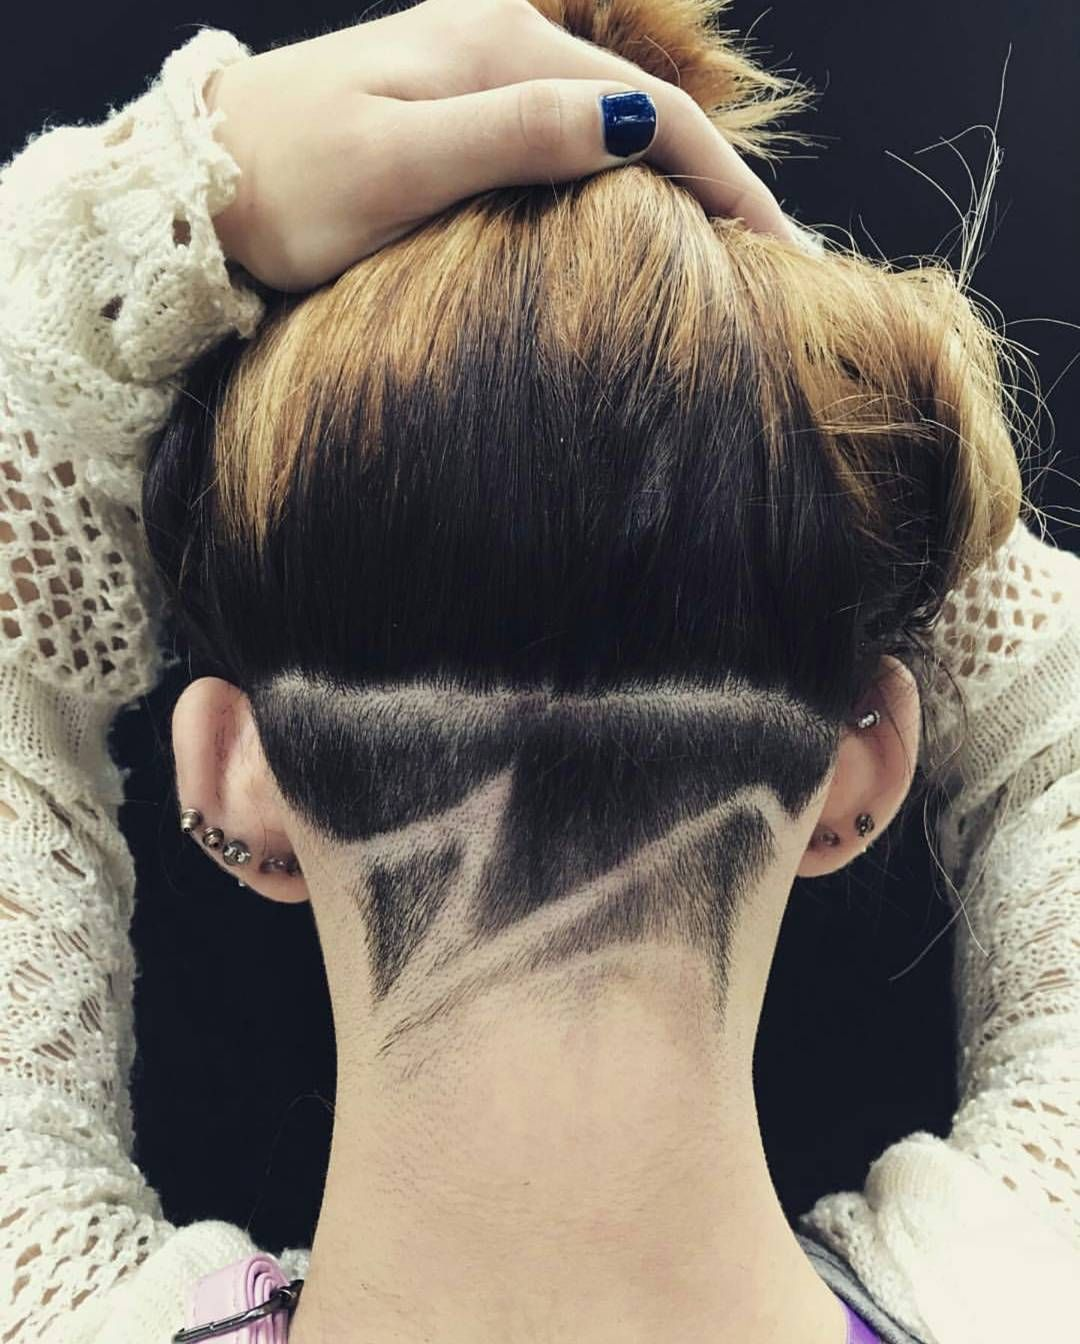 cool undercut wave pattern for women | undercuts/haircuts